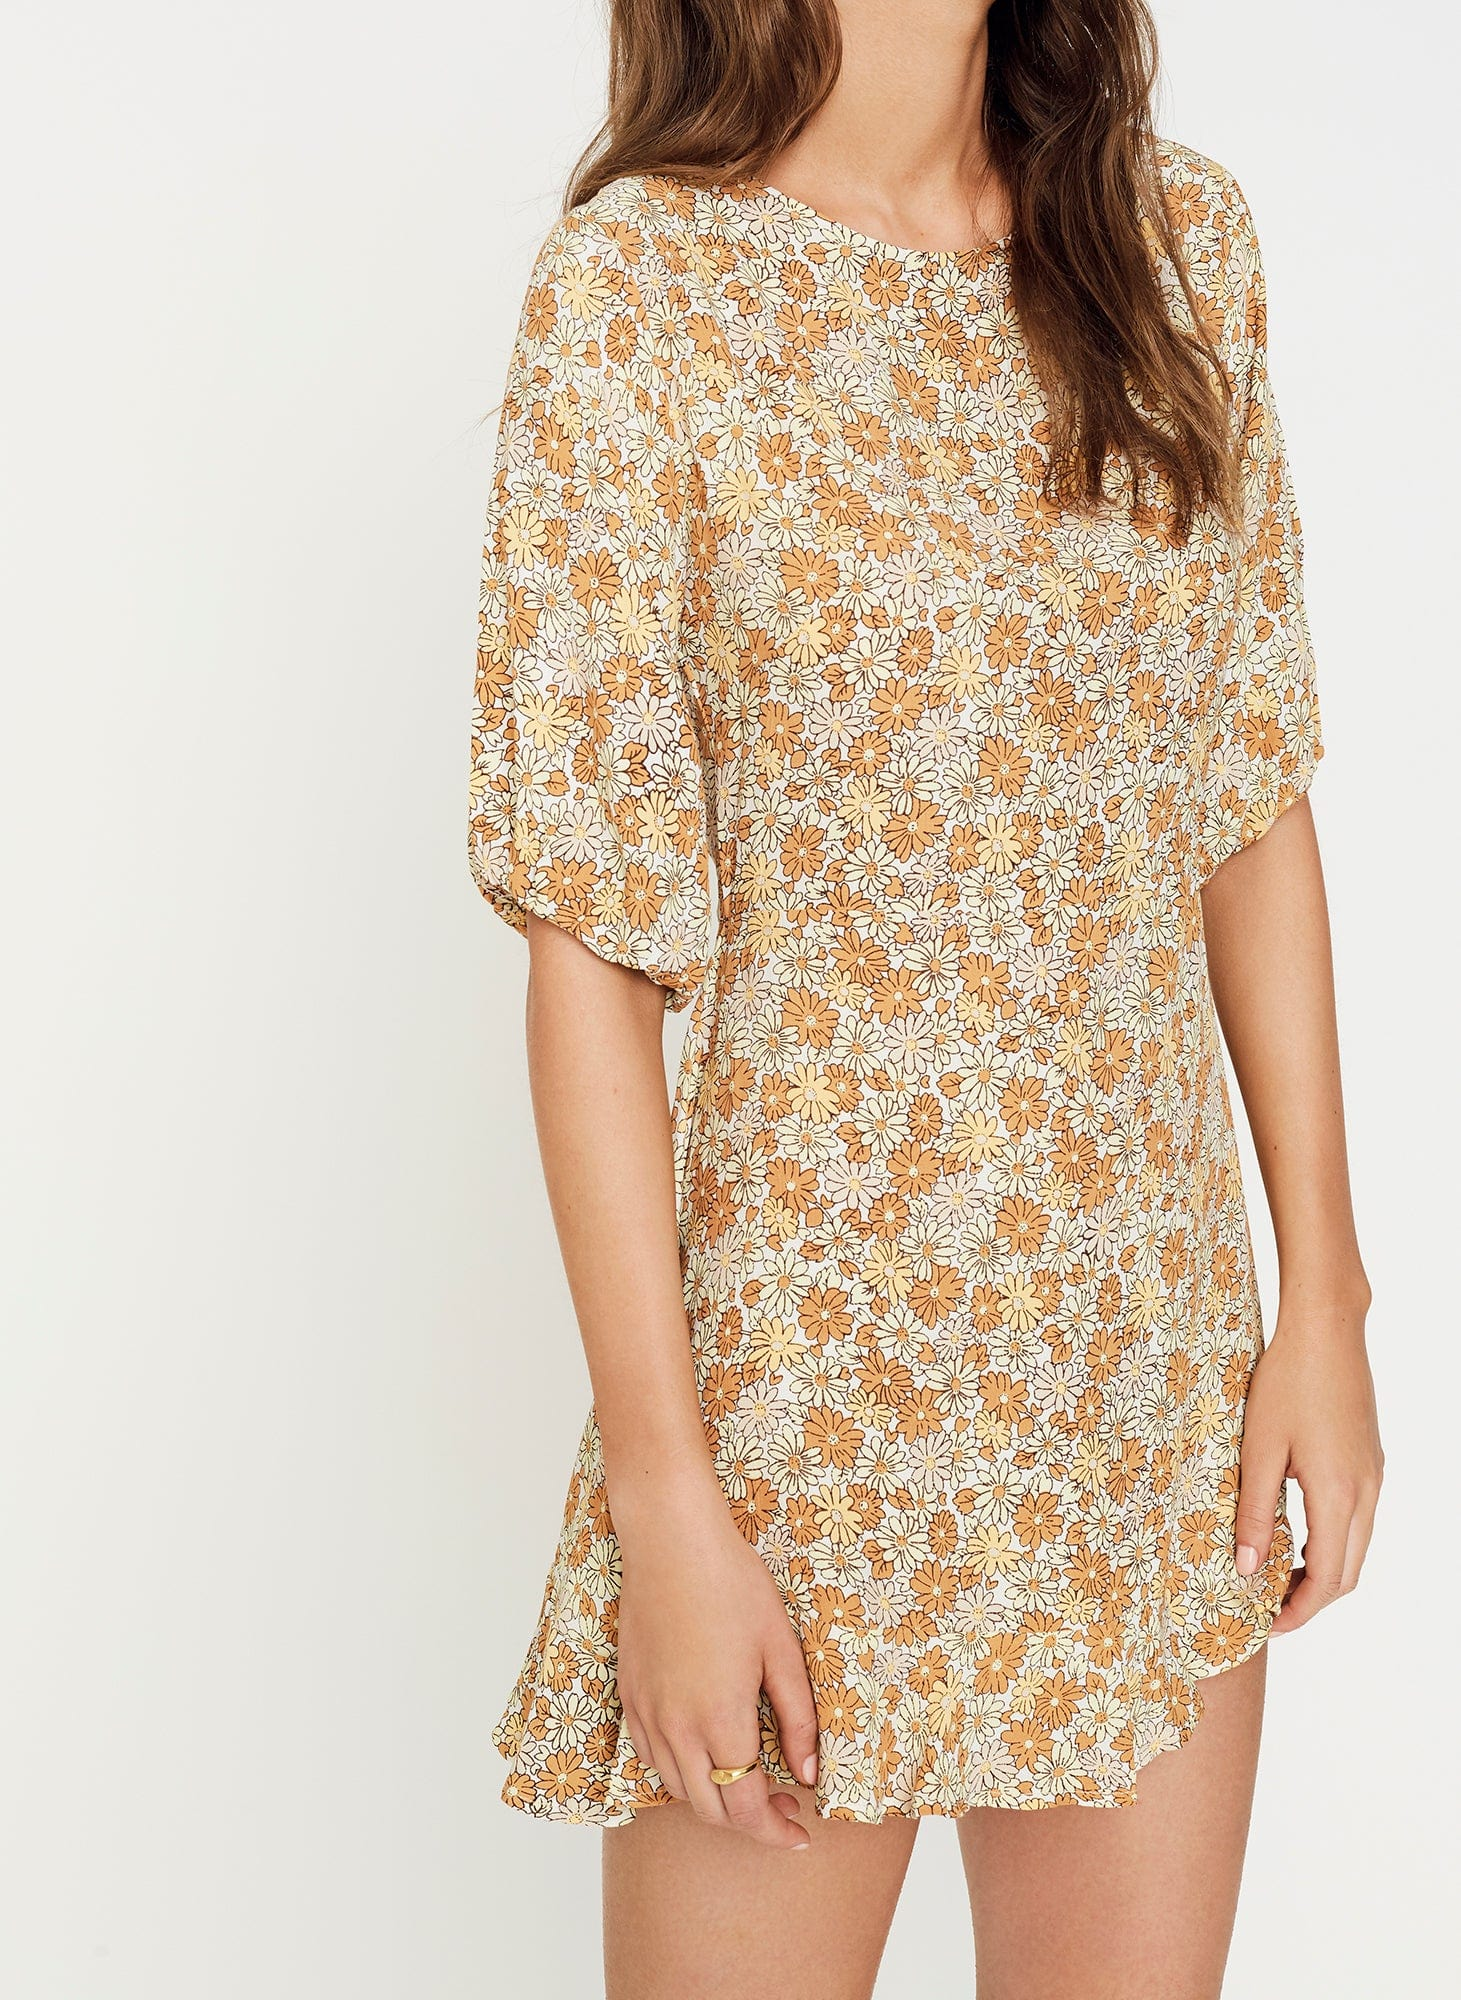 ZOELLA FLORAL PRINT - PEACH - JEANETE DRESS